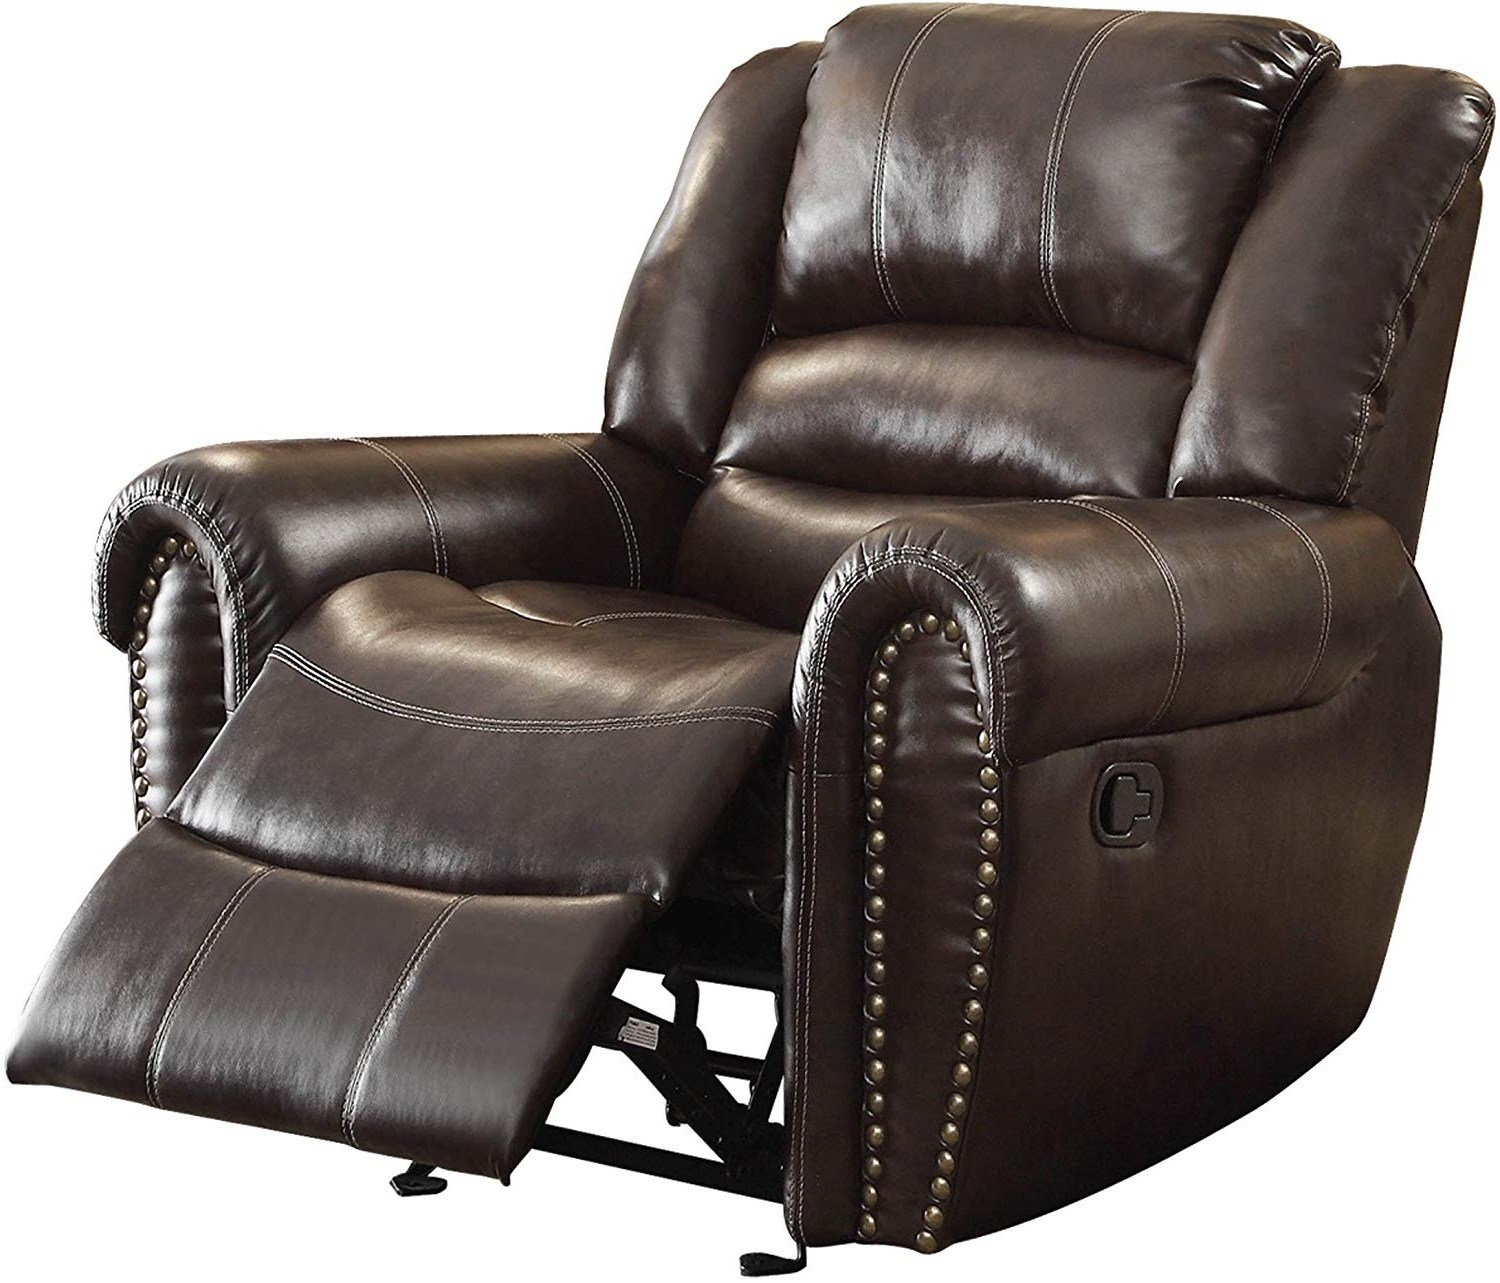 Homelegance's Recliners